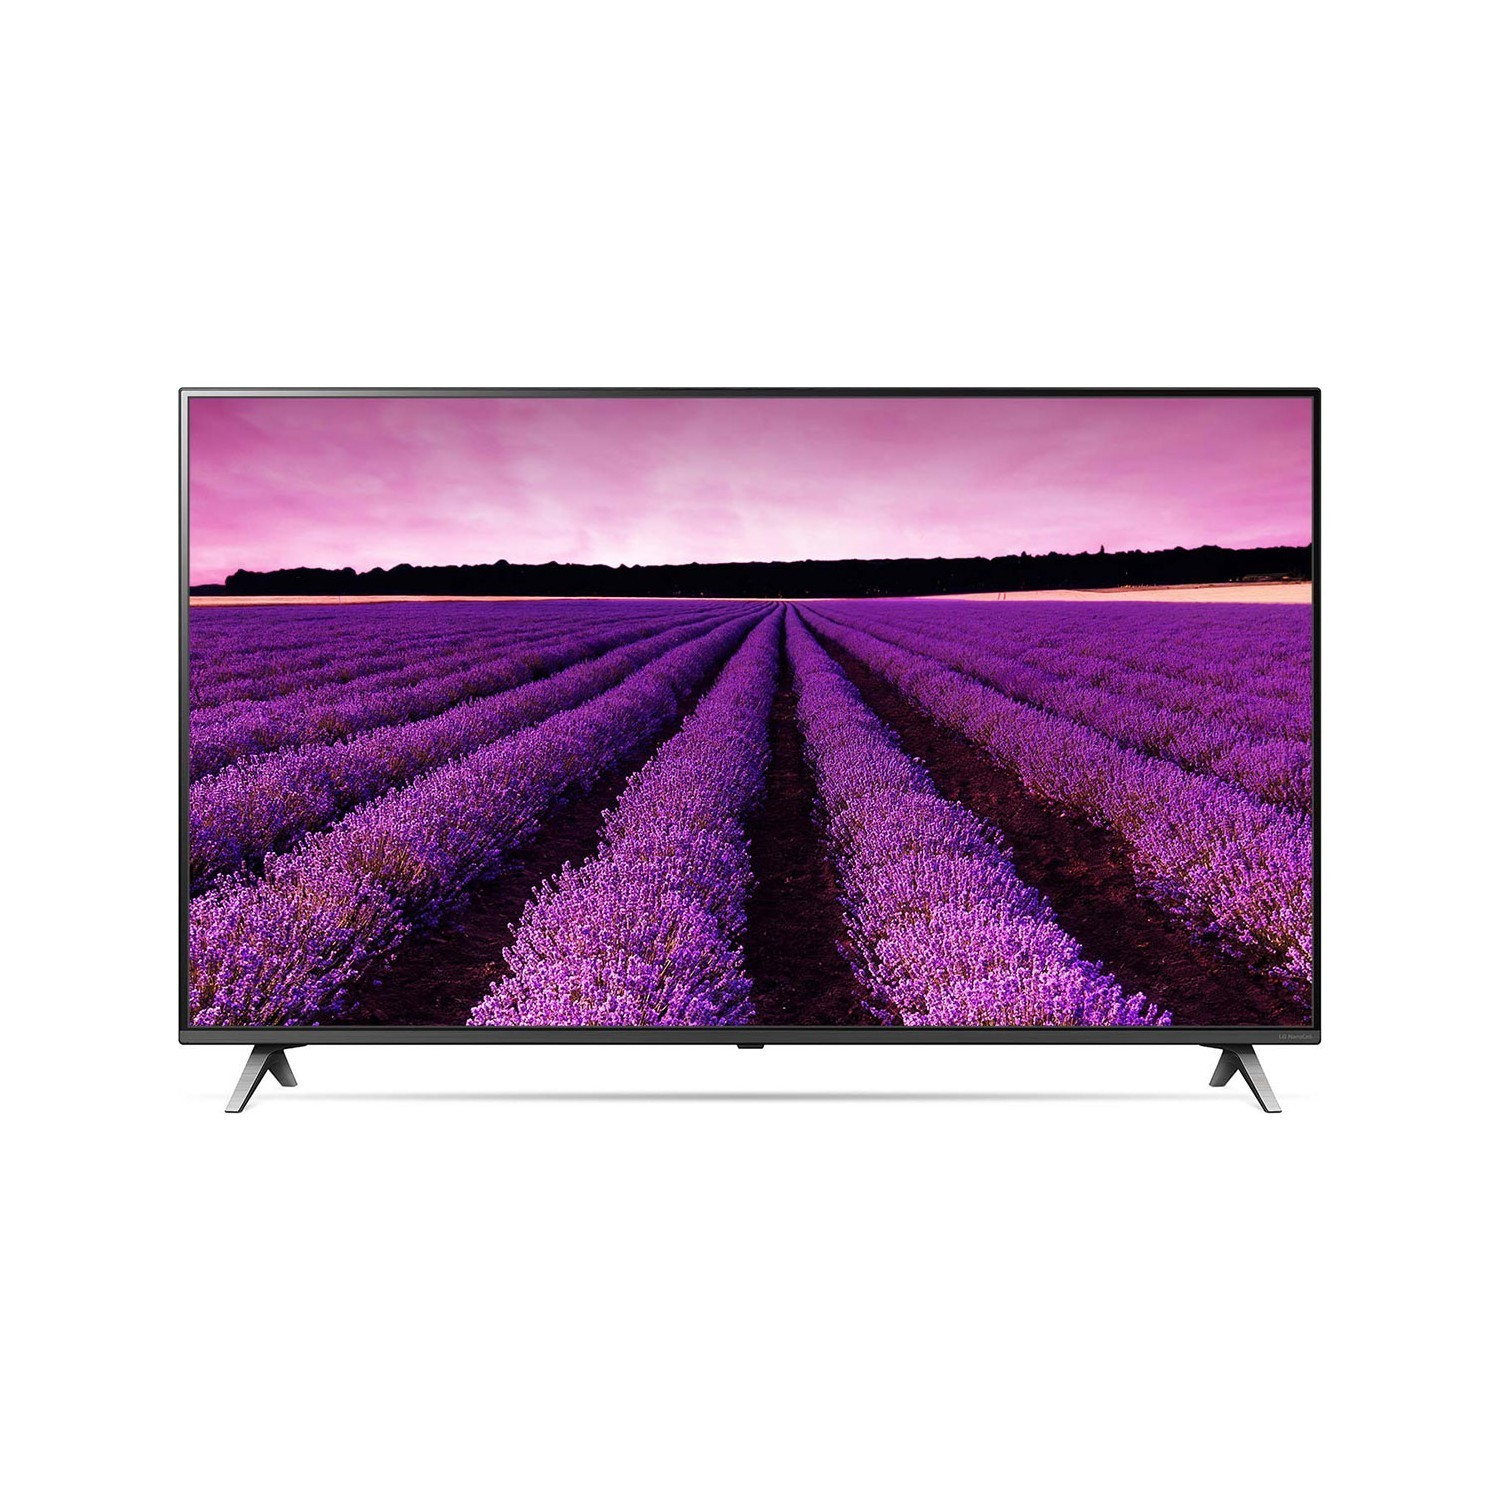 Lot 16520 - + VAT Grade A LG 49 Inch ACTIVE HDR 4K SUPER ULTRA HD NANO LED SMART TV WITH FREEVIEW HD & WEBOS &